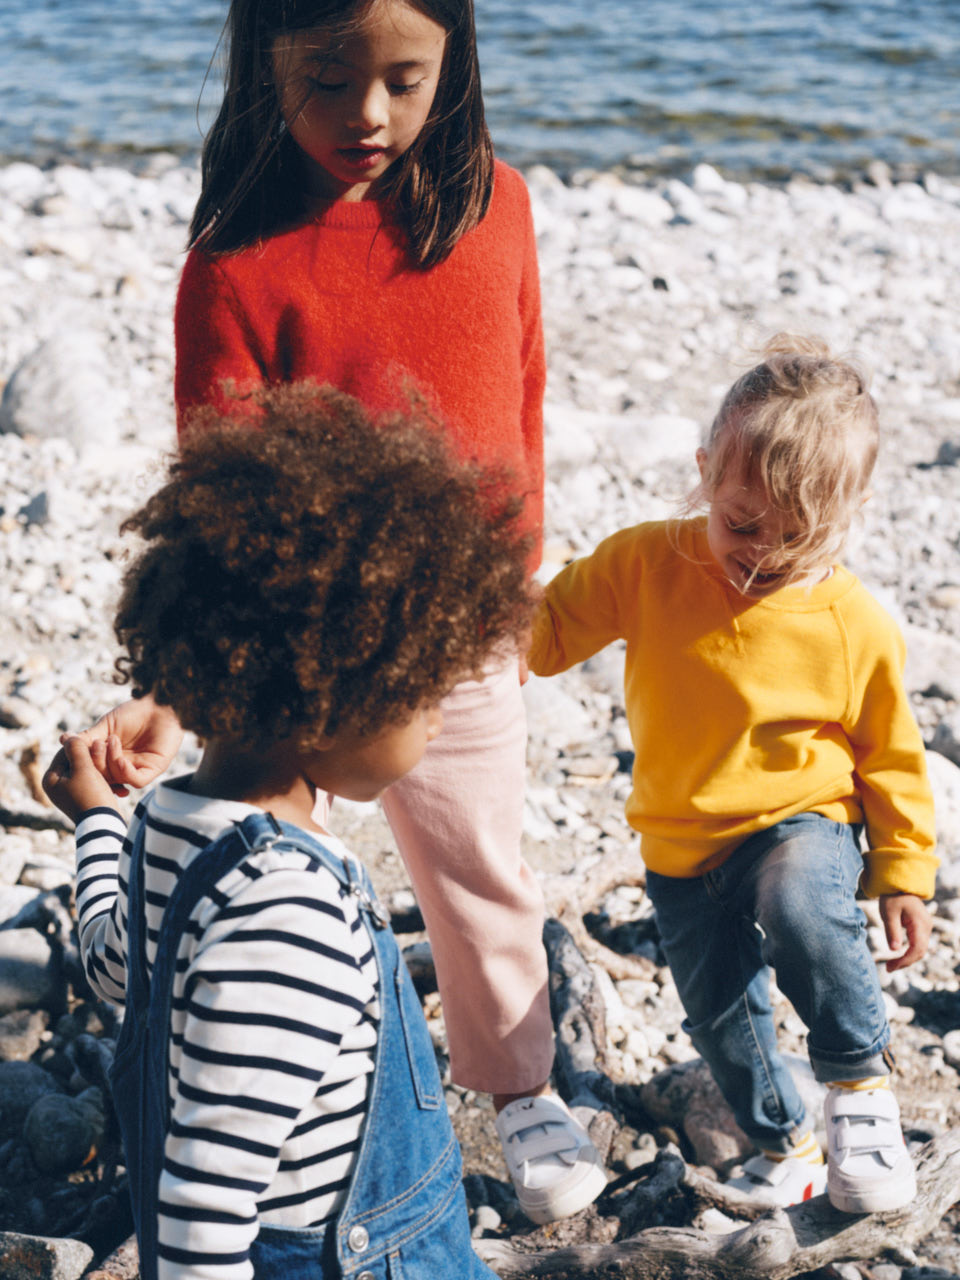 Chiildren wearing basics in vivid colors playing on a pebble beach